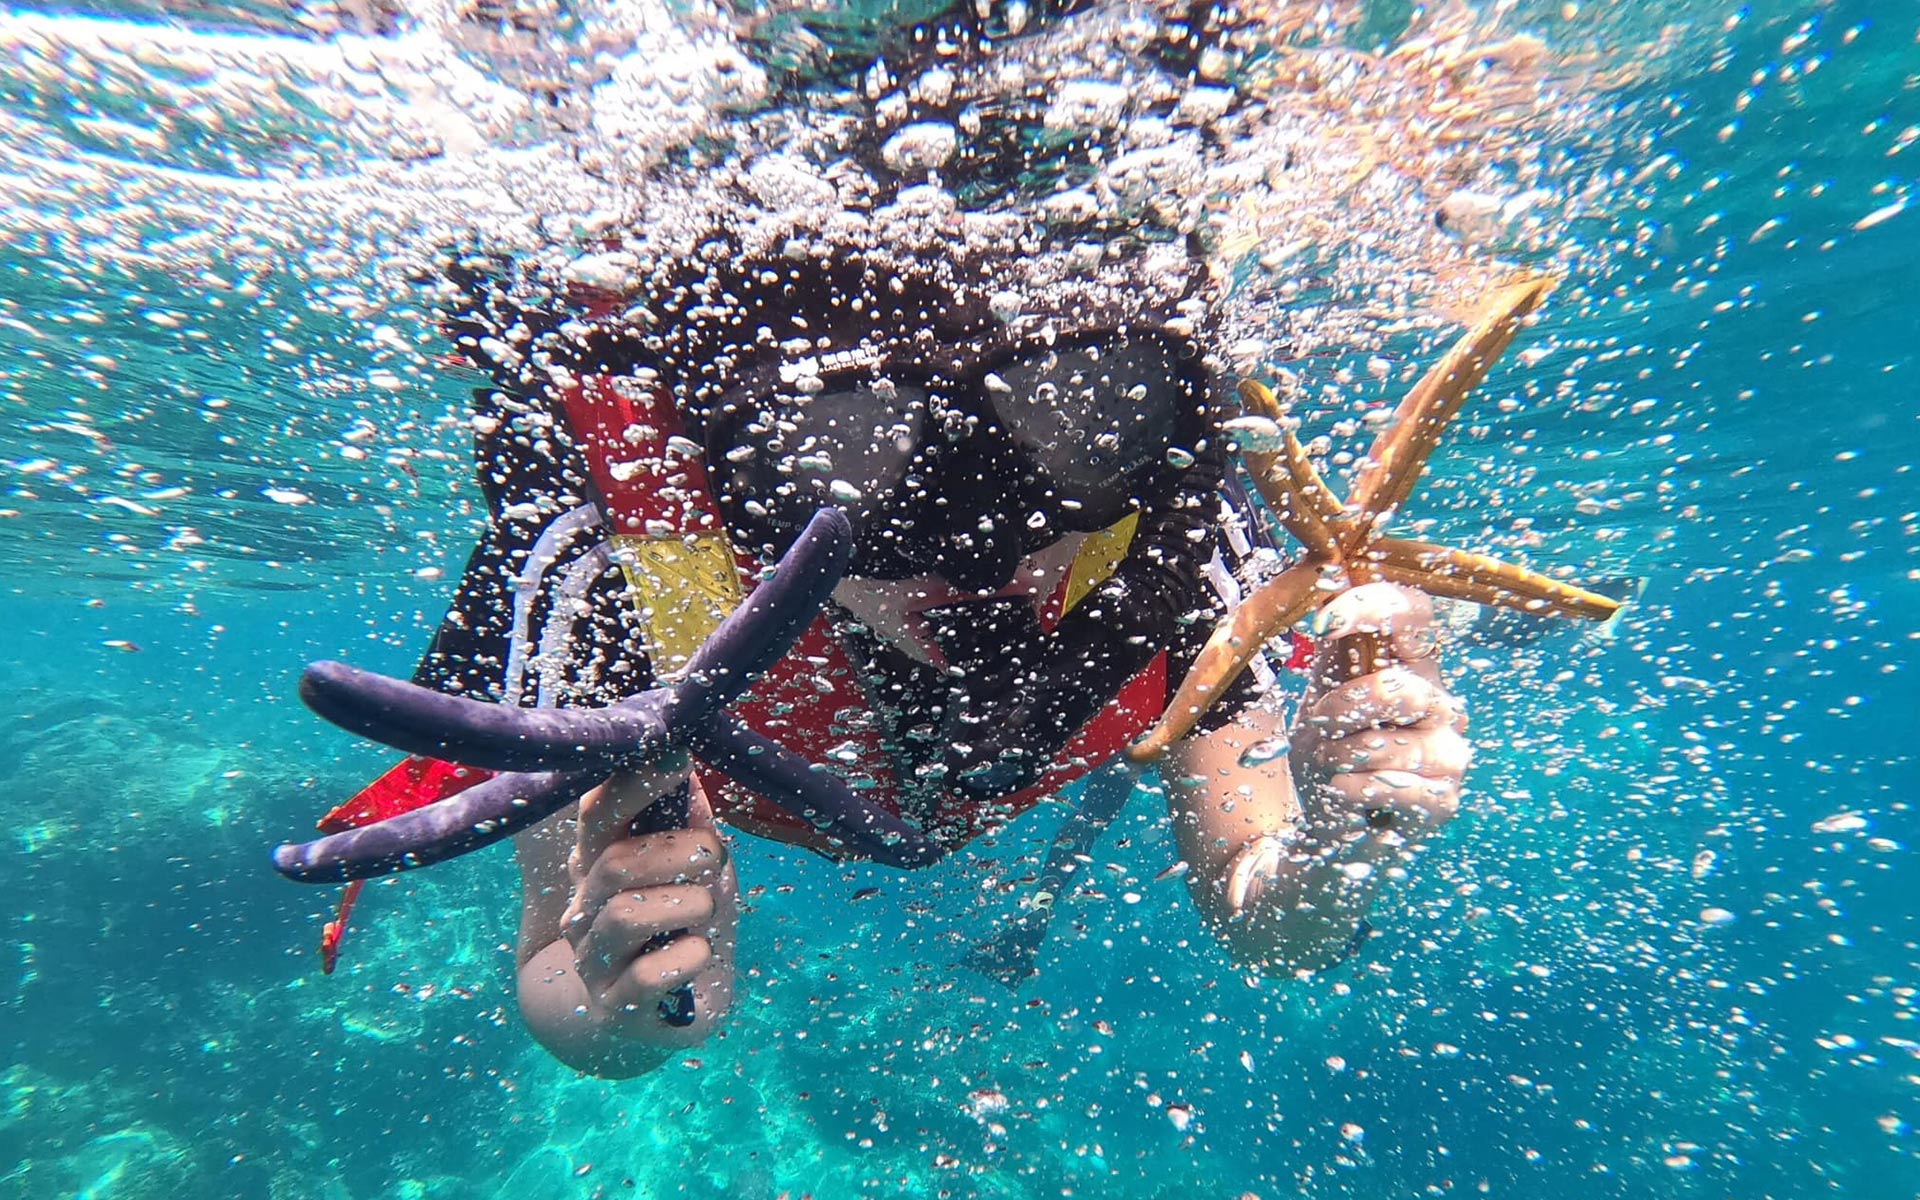 Snorkeling and Scuba Diving - Unique things to do in Nha Trang